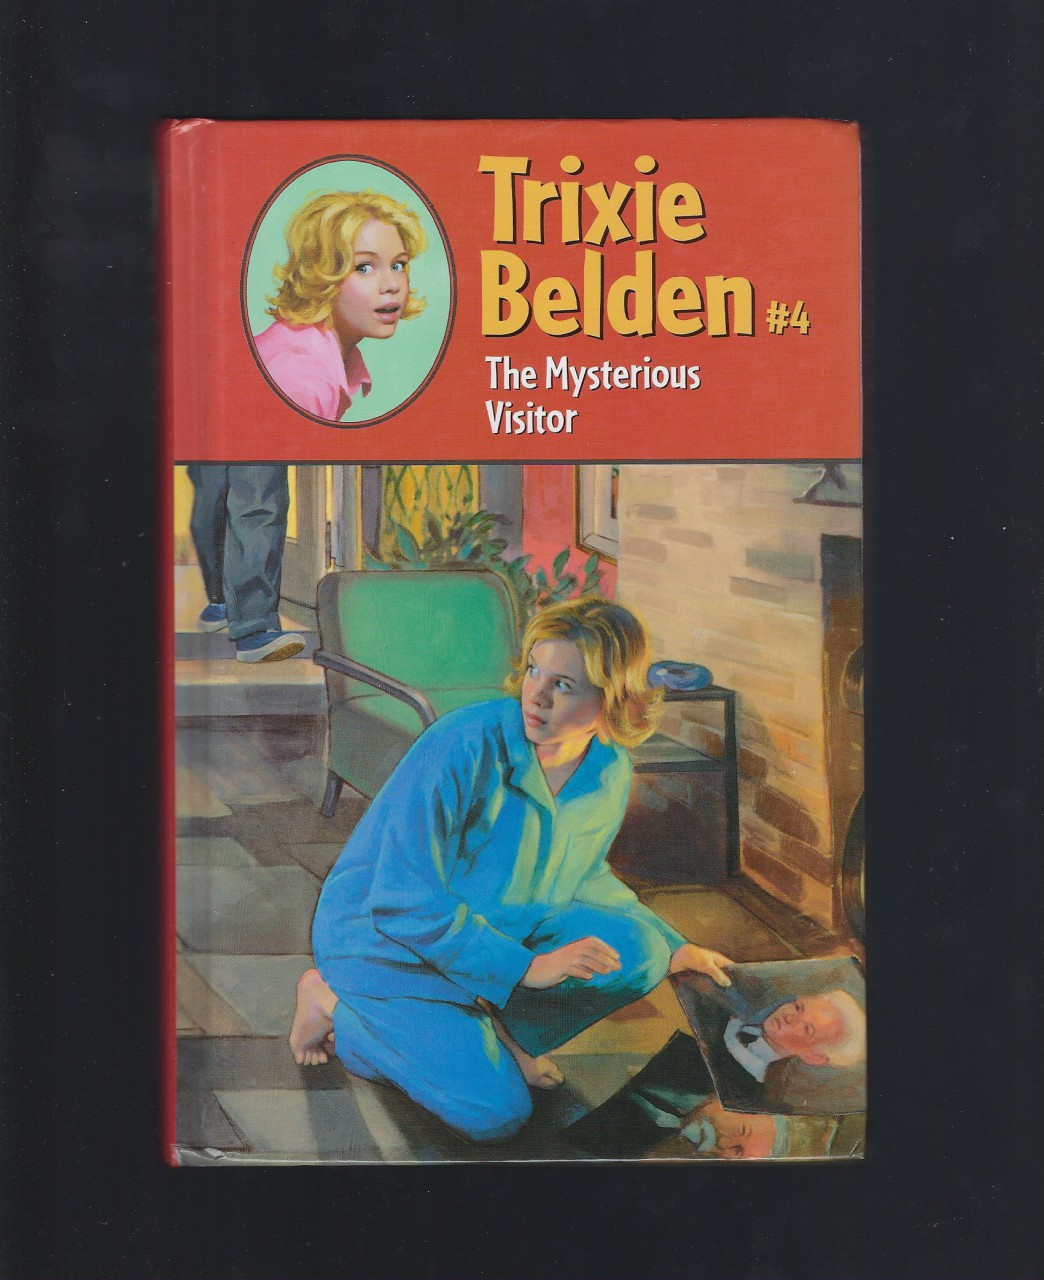 Trixie Belden and The Mysterious Visitor #4 Hardback, Campbell, Julie